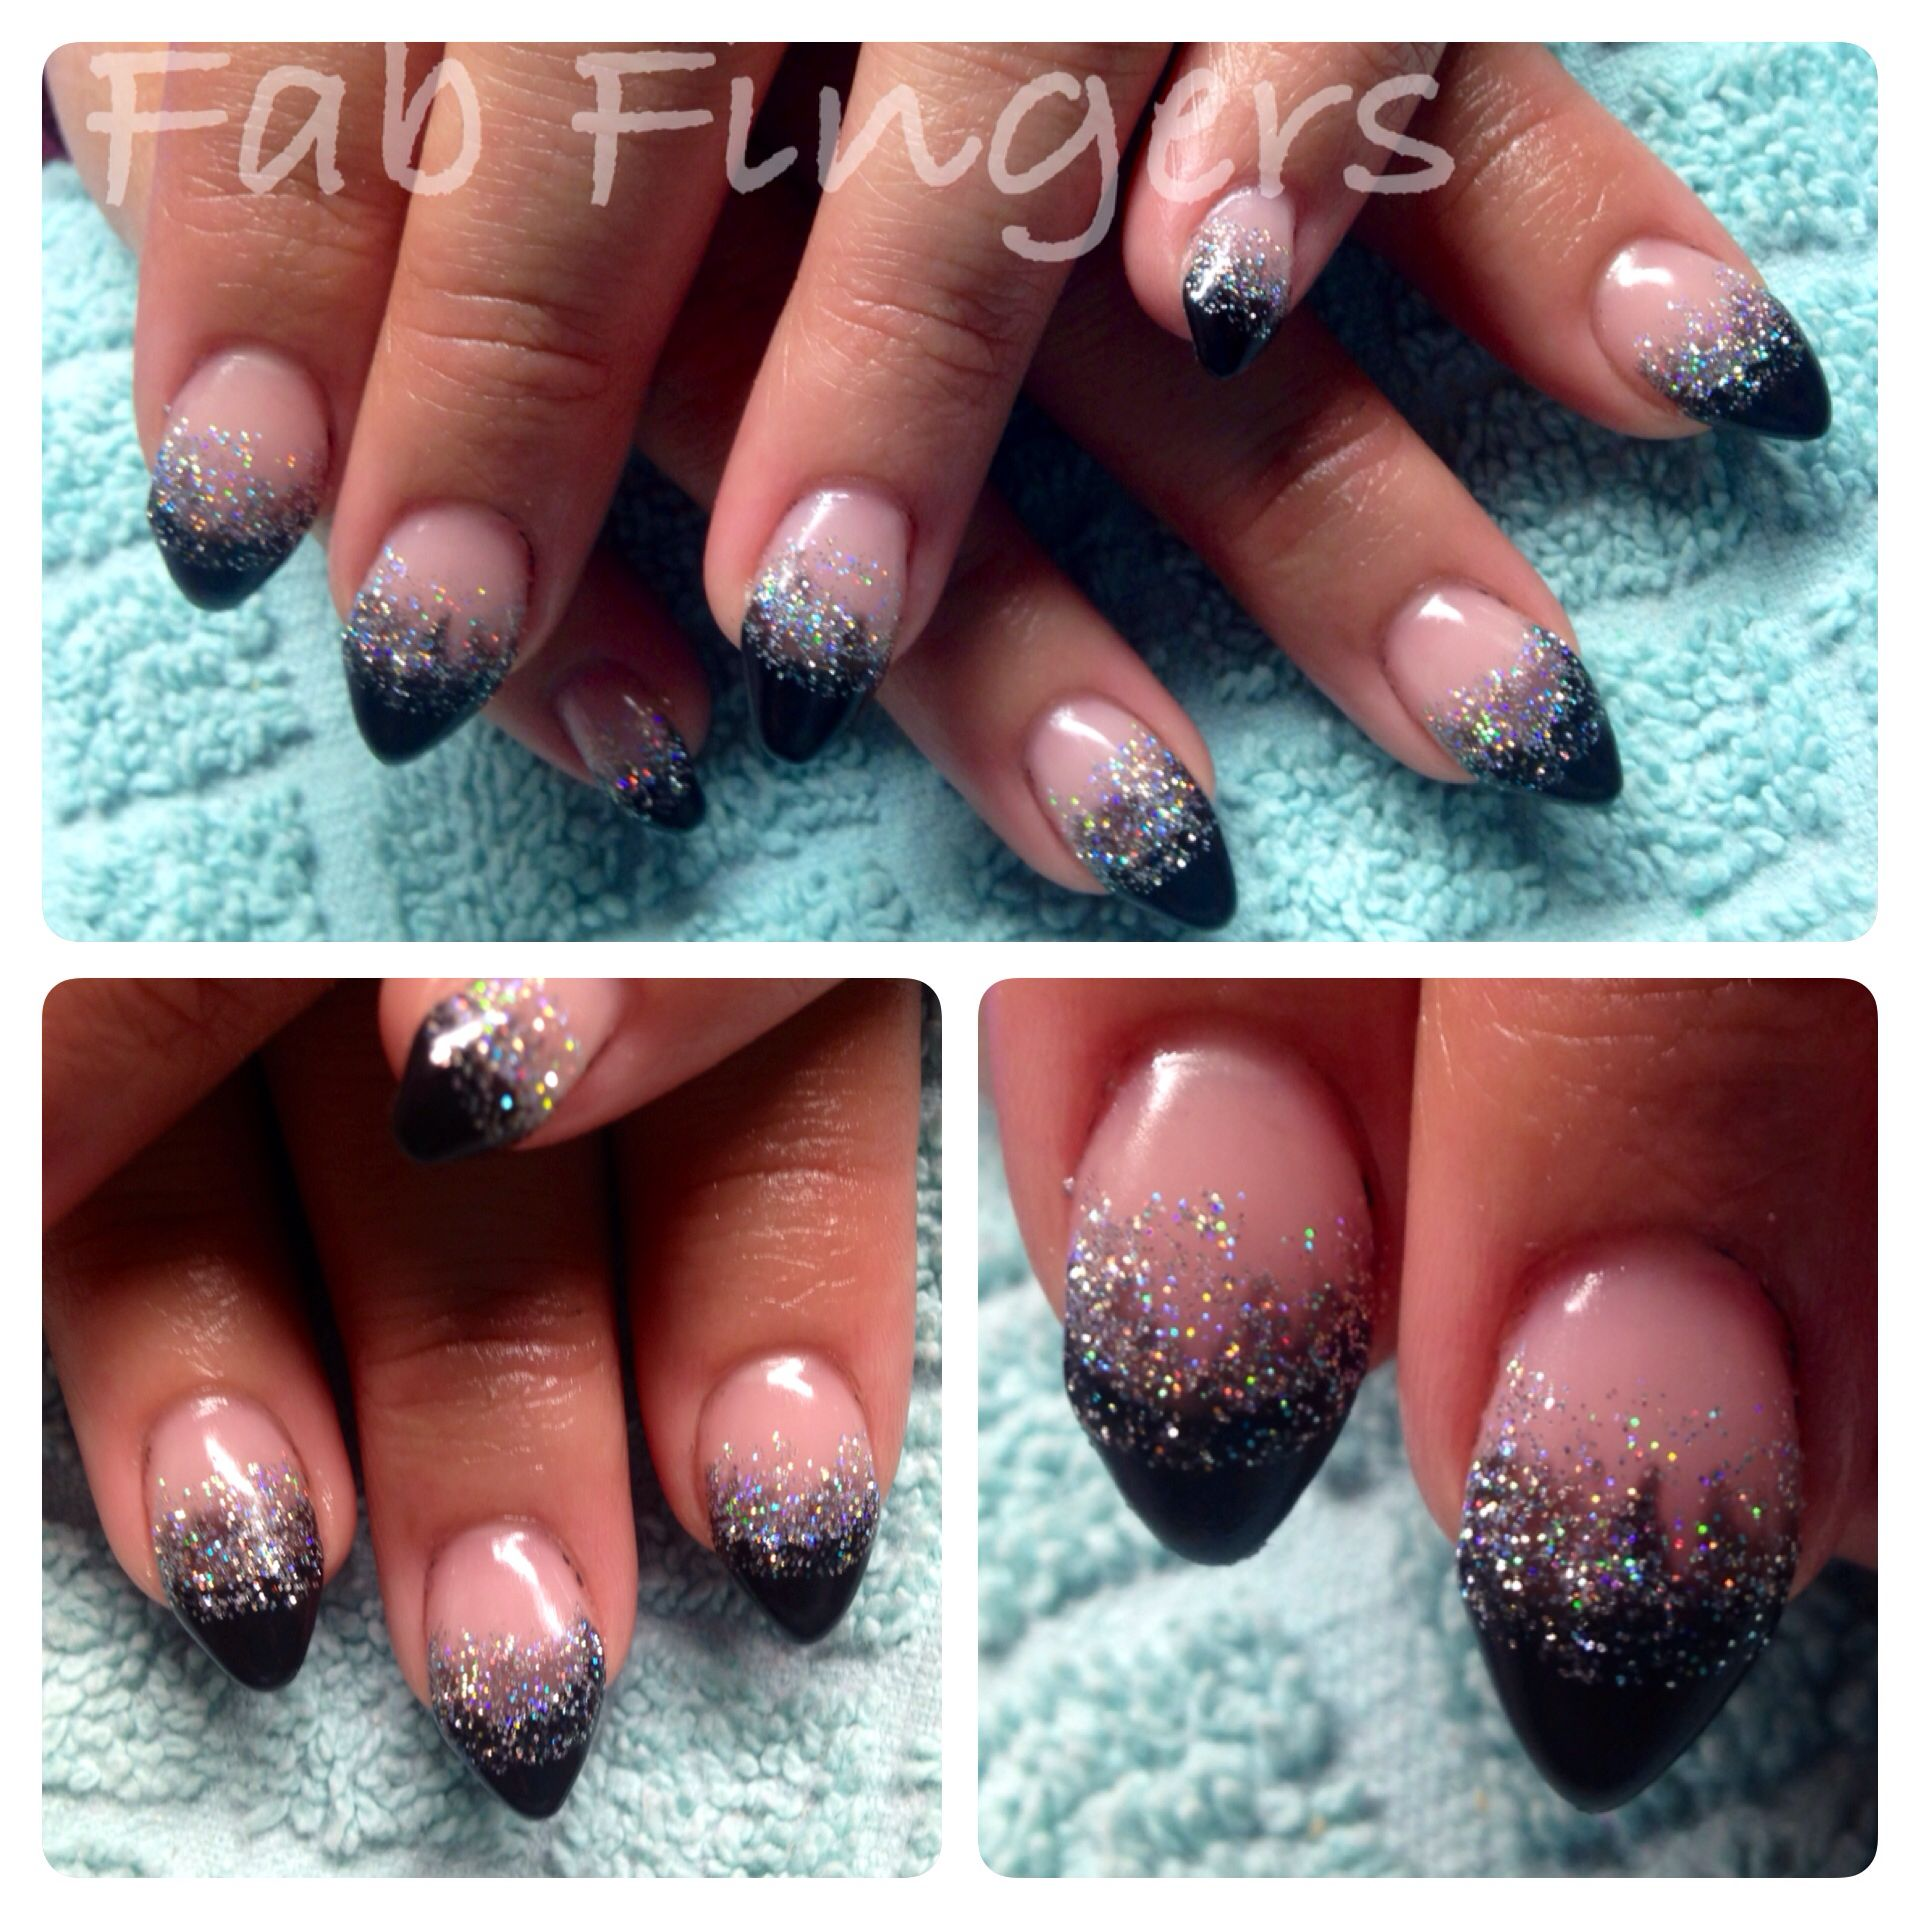 Black glitter fade almond gel nails new years nails | Nail ideas ...